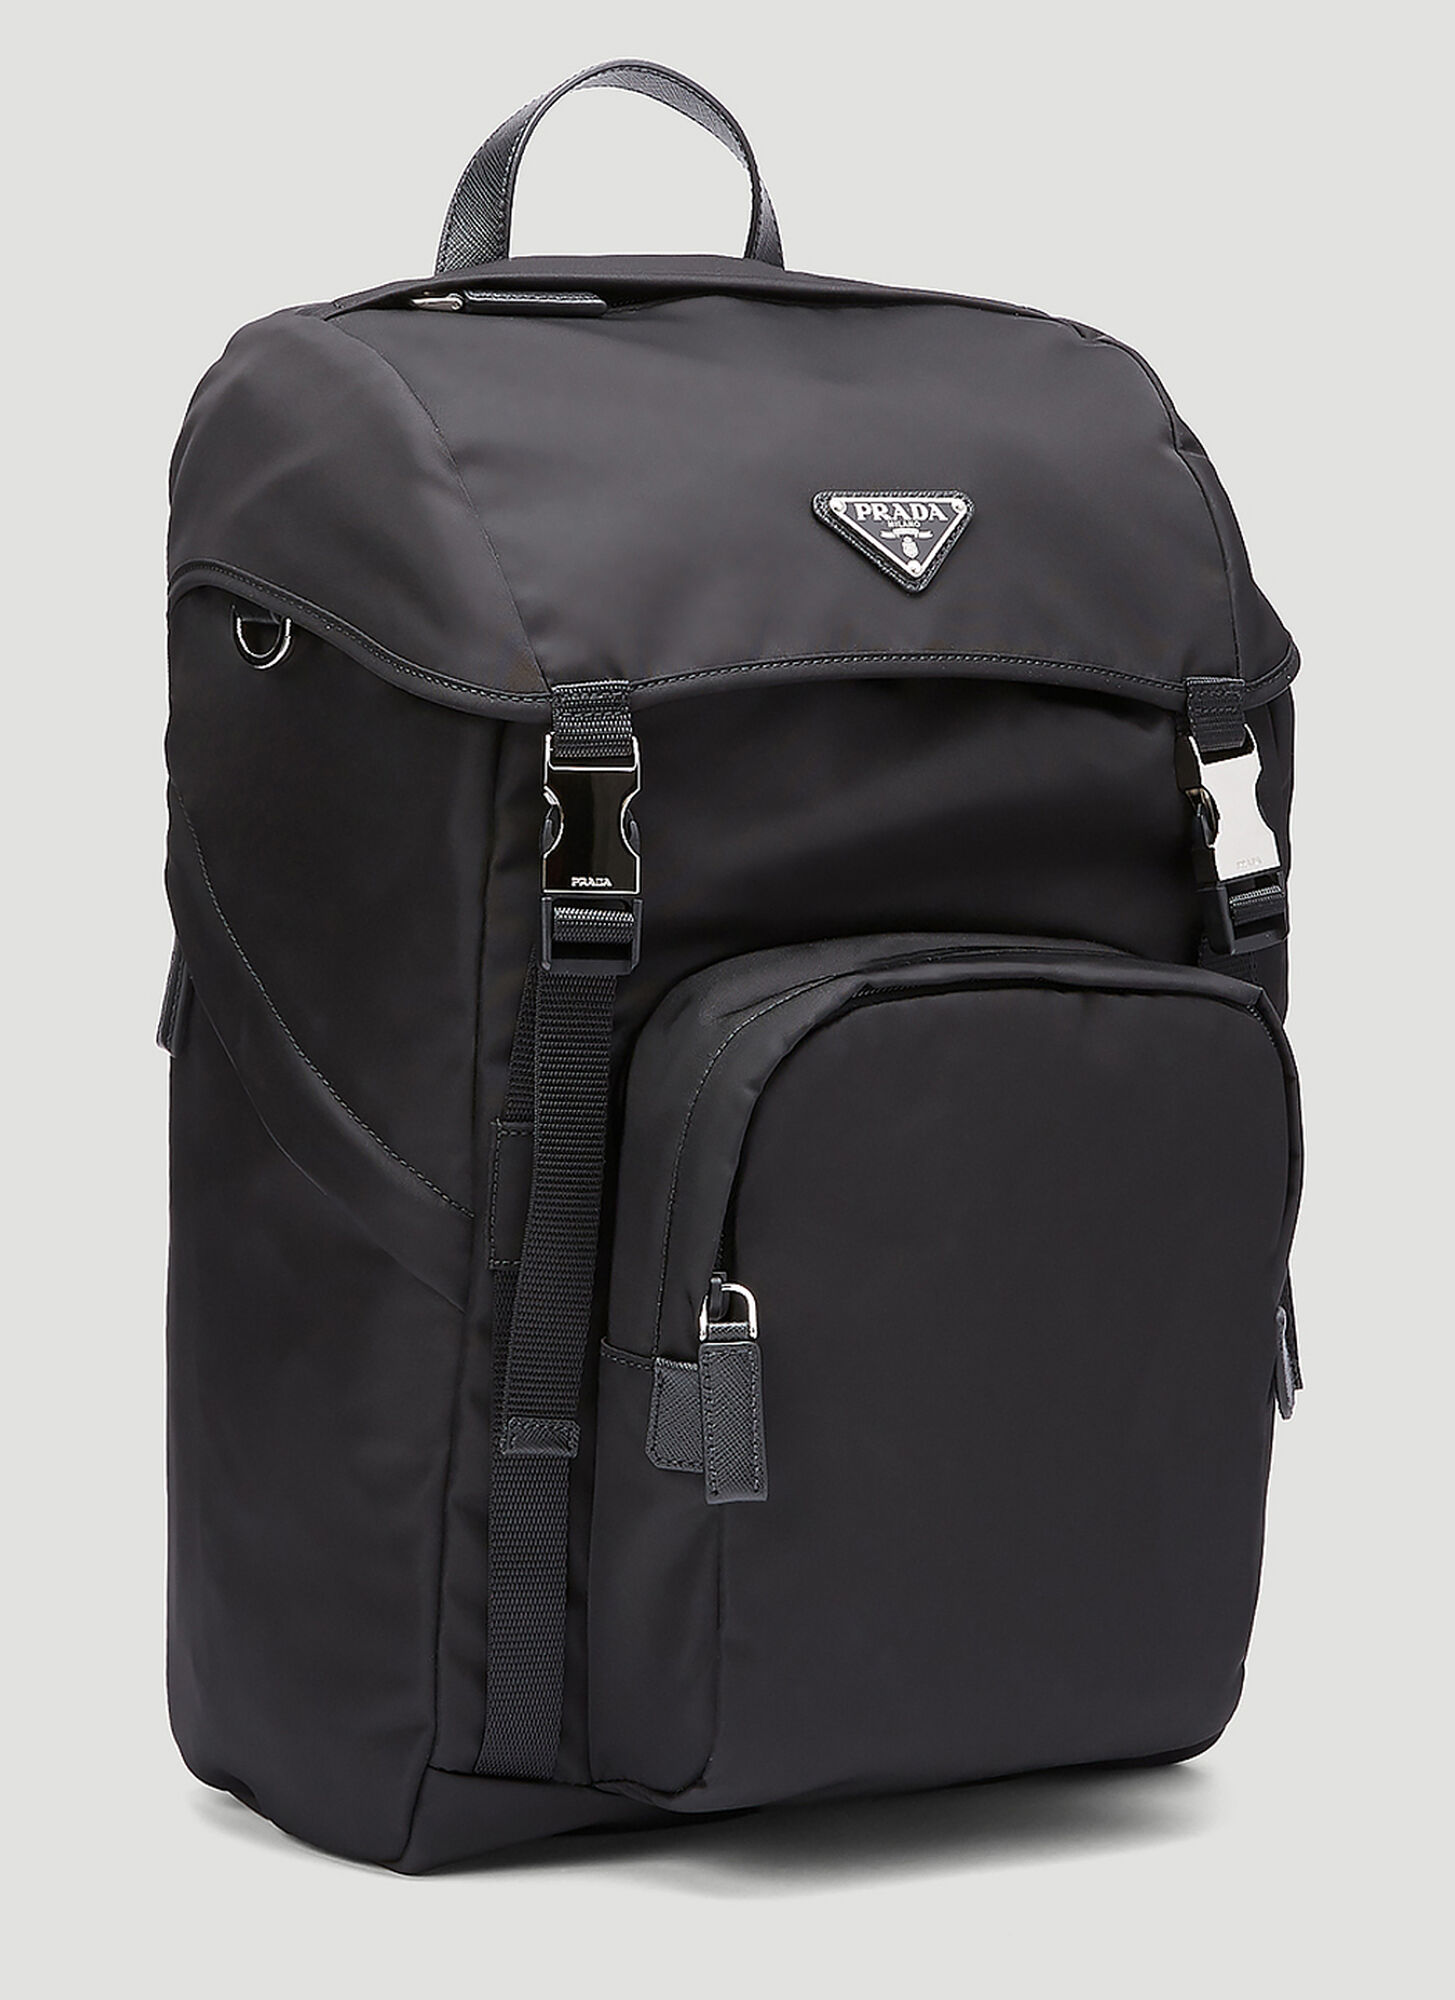 Prada Nylon and Saffiano Leather Backpack in black